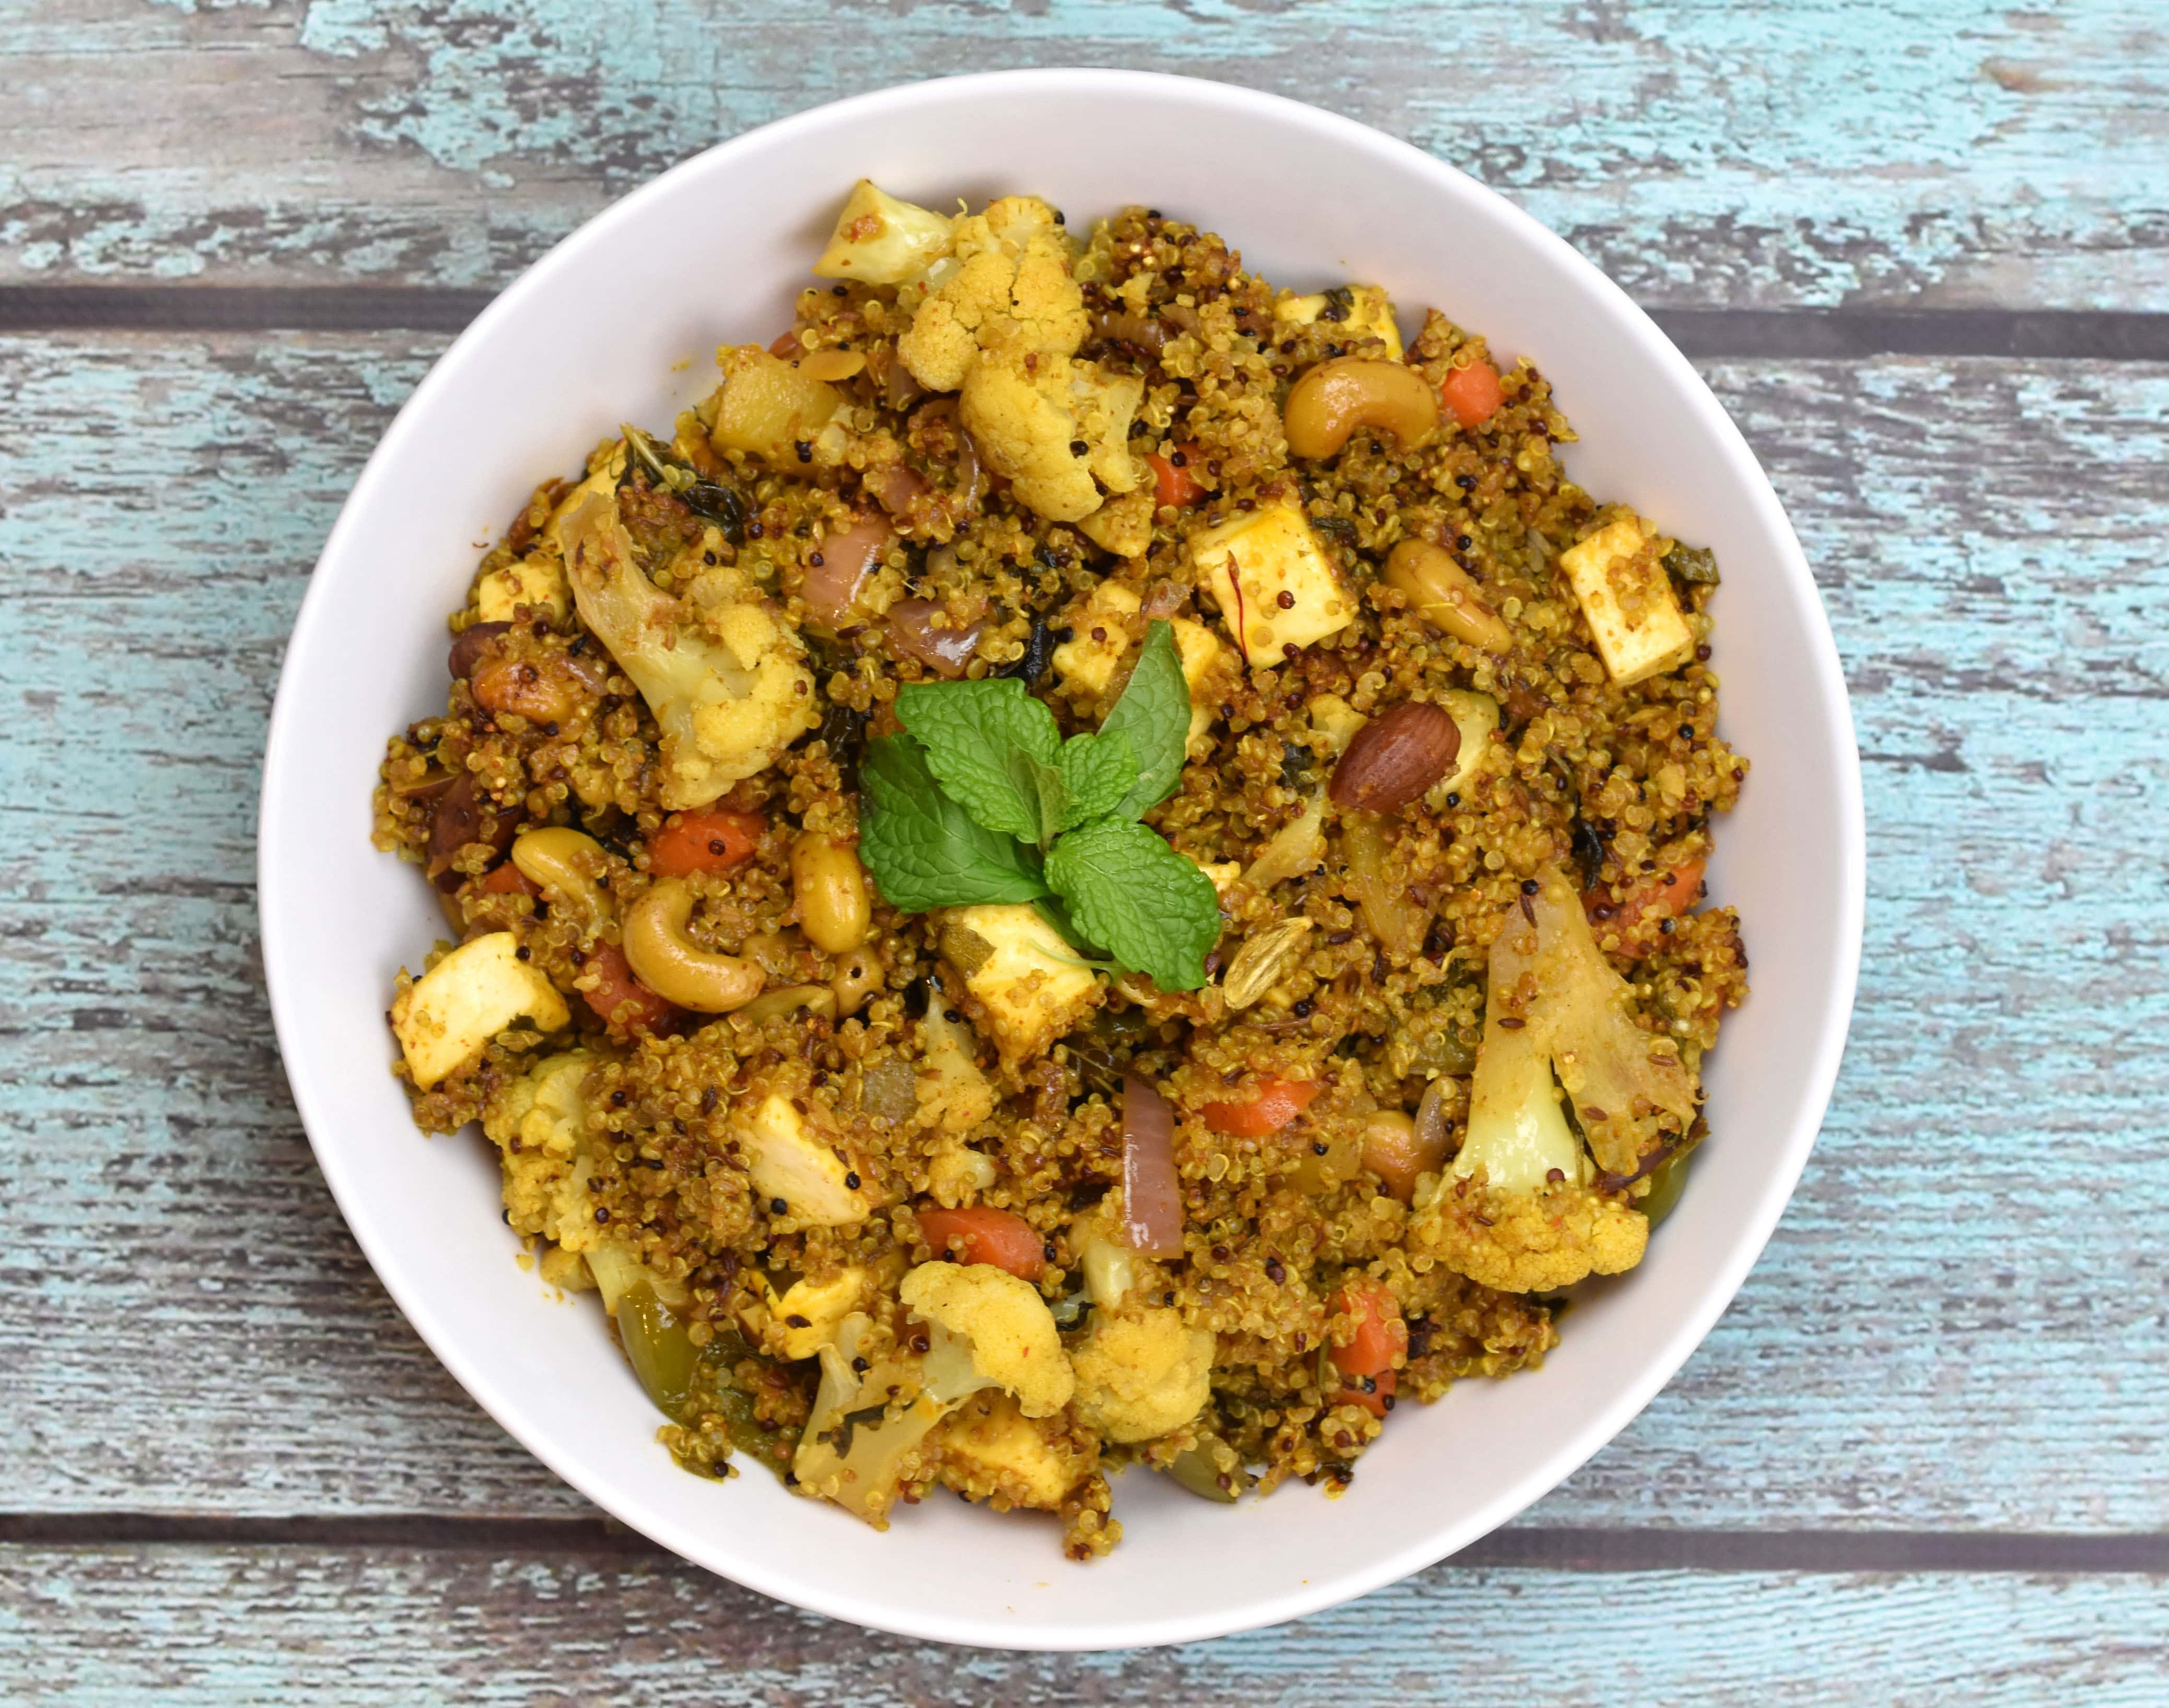 Quinoa vegetable biryani. A healthy twist to your everyday vegetarian biryani by Spice Cravings. Quinoa Vegetable Biryani/Pilaf is my healthy twist on a popular Indian classic, Vegetable Biryani! I replace rice with Quinoa in this recipe. #food #foodie #foodblogger #delicious #recipe #instantpot #recipes #easyrecipe #cuisine #30minutemeal #instagood #foodphotography #tasty #indian